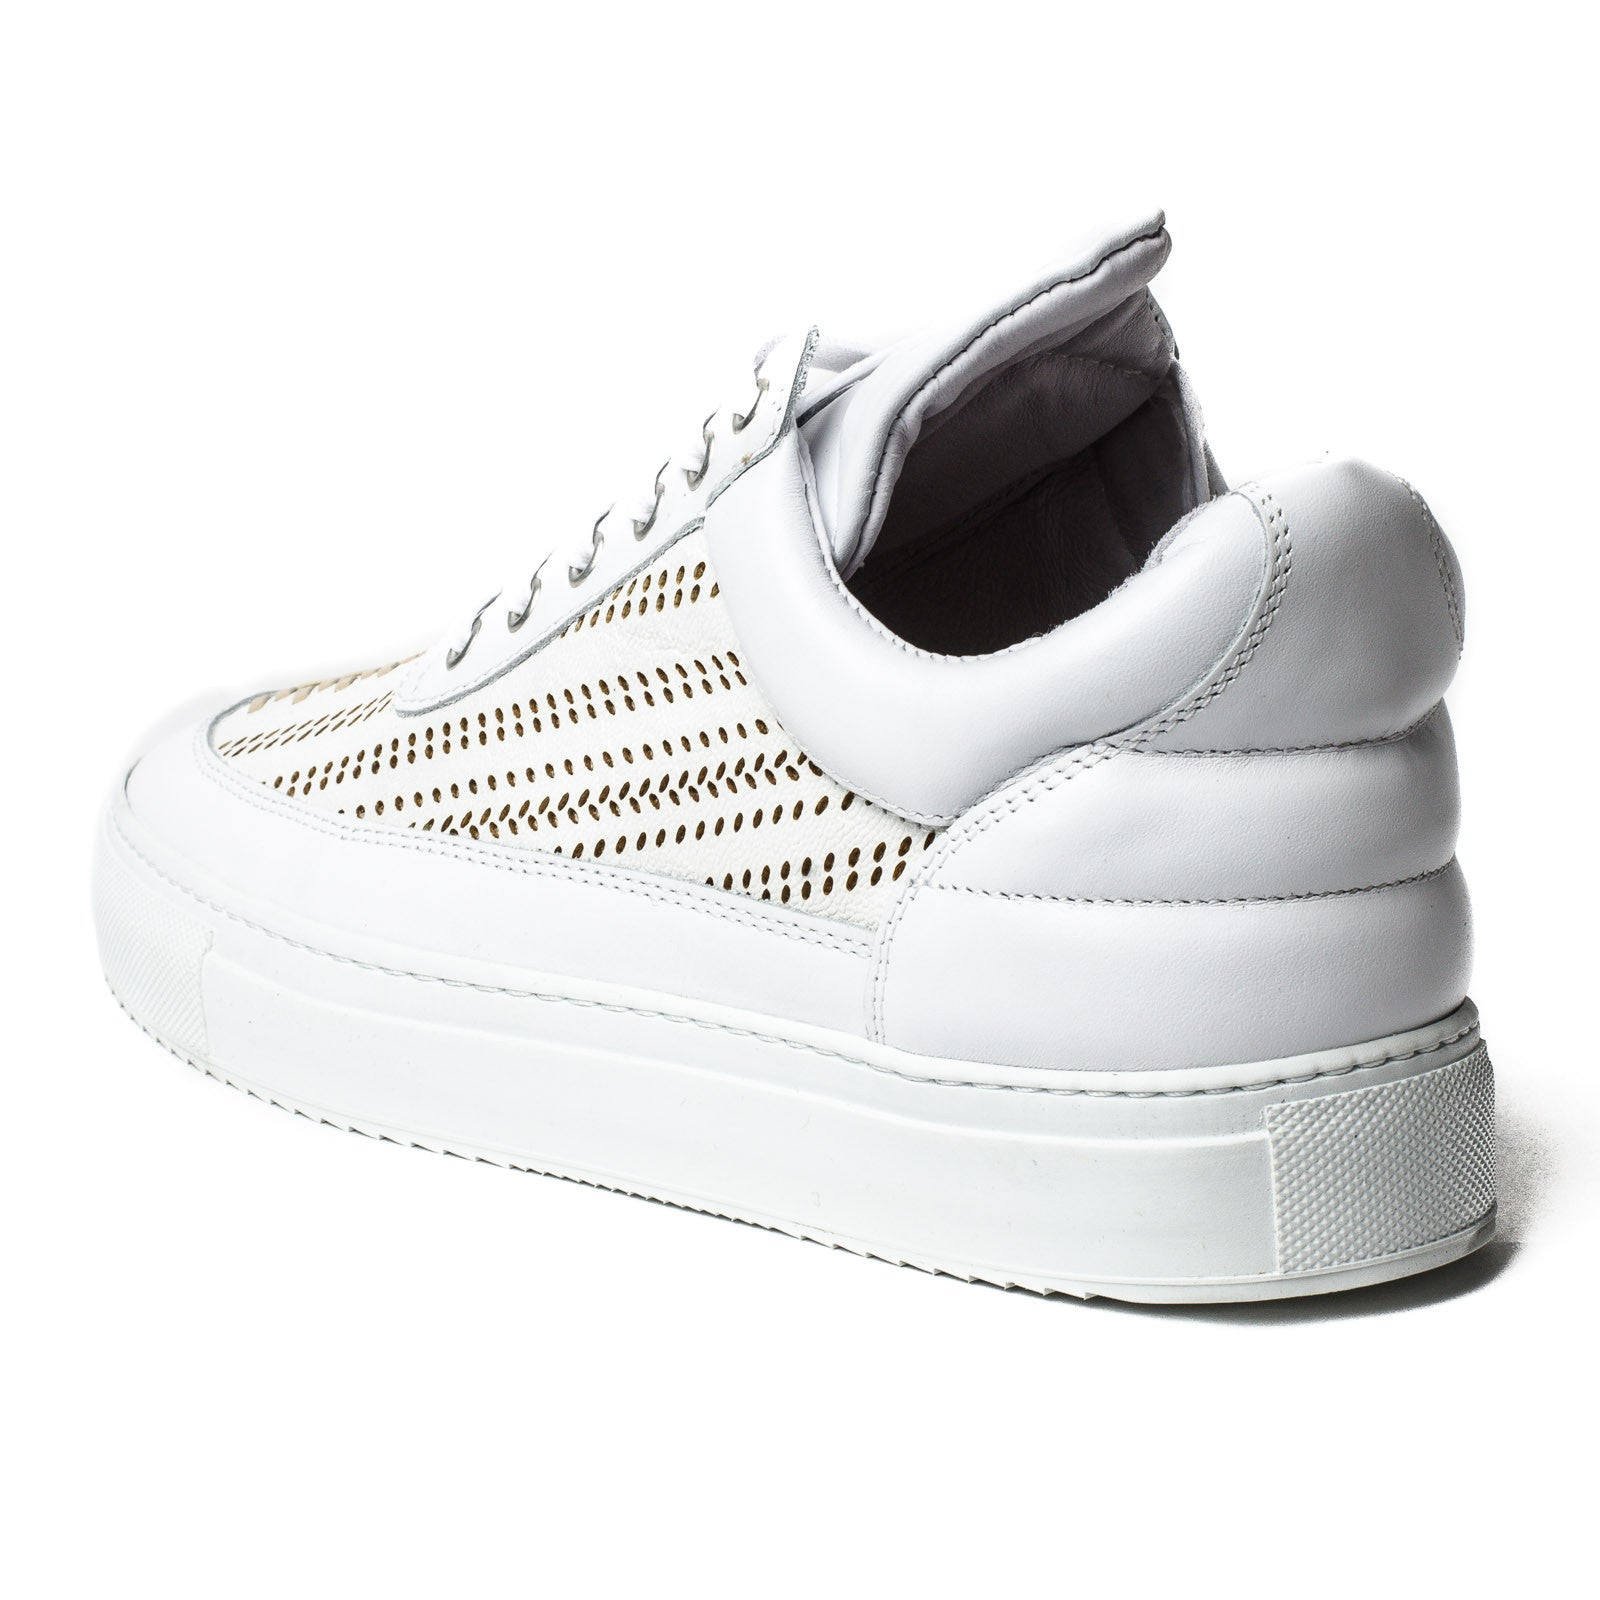 Gaucho Low Top White 1010024